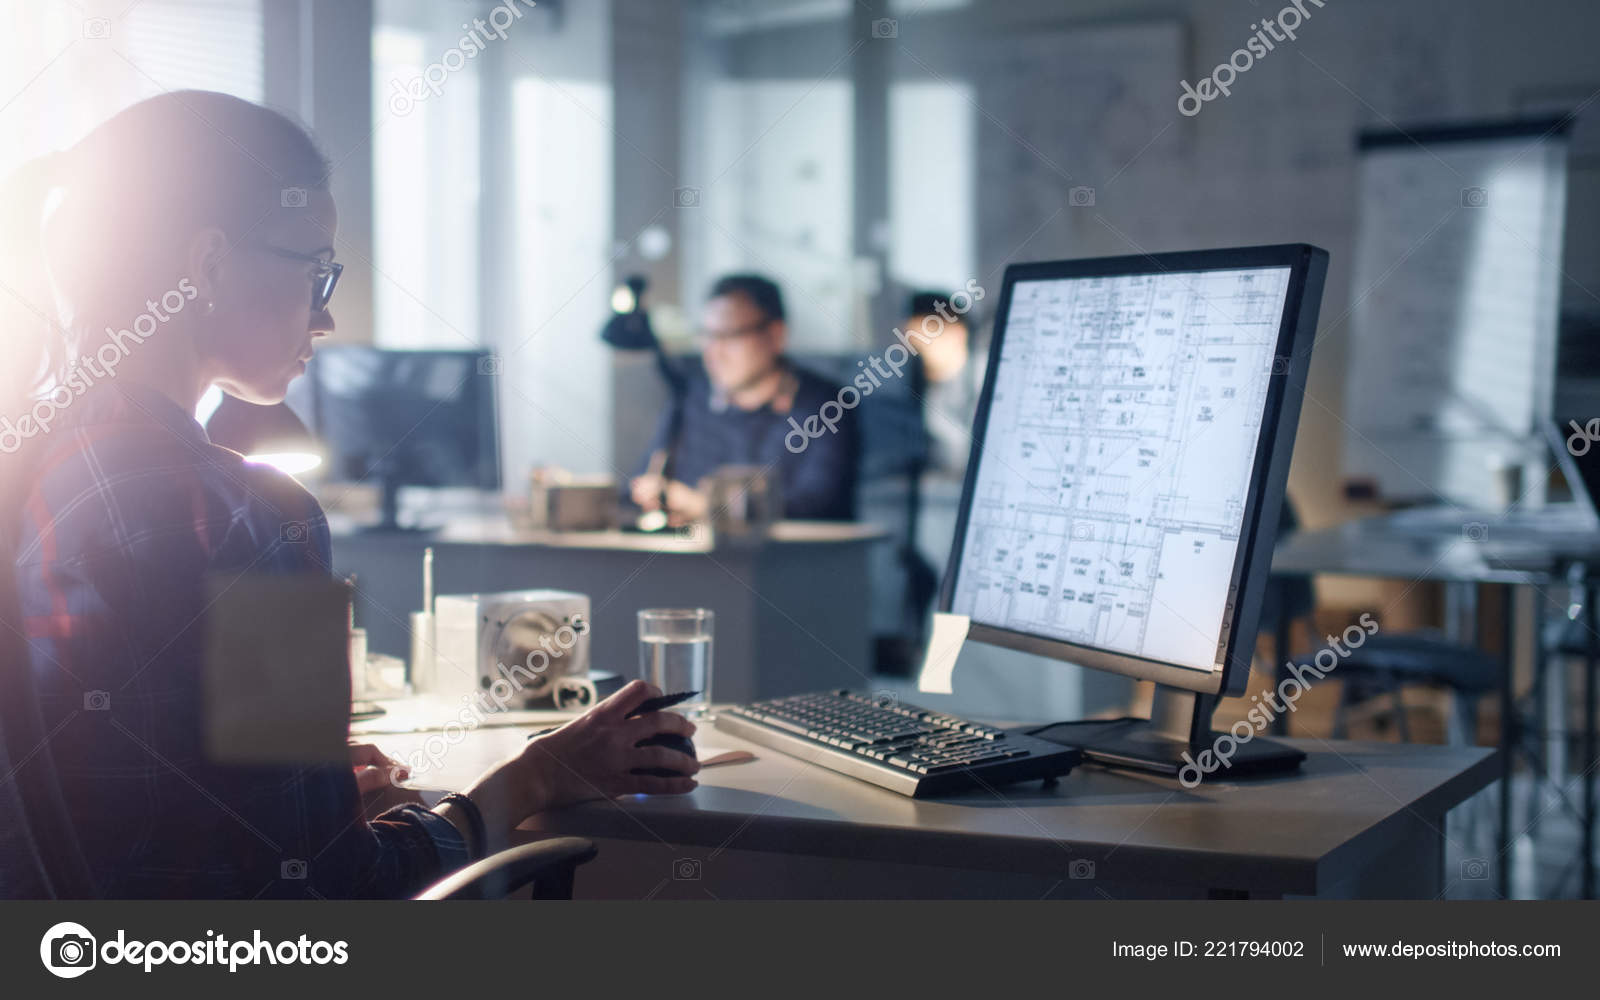 Bureau Designer Late Night Early Morning Engineering Bureau Female Designer Works